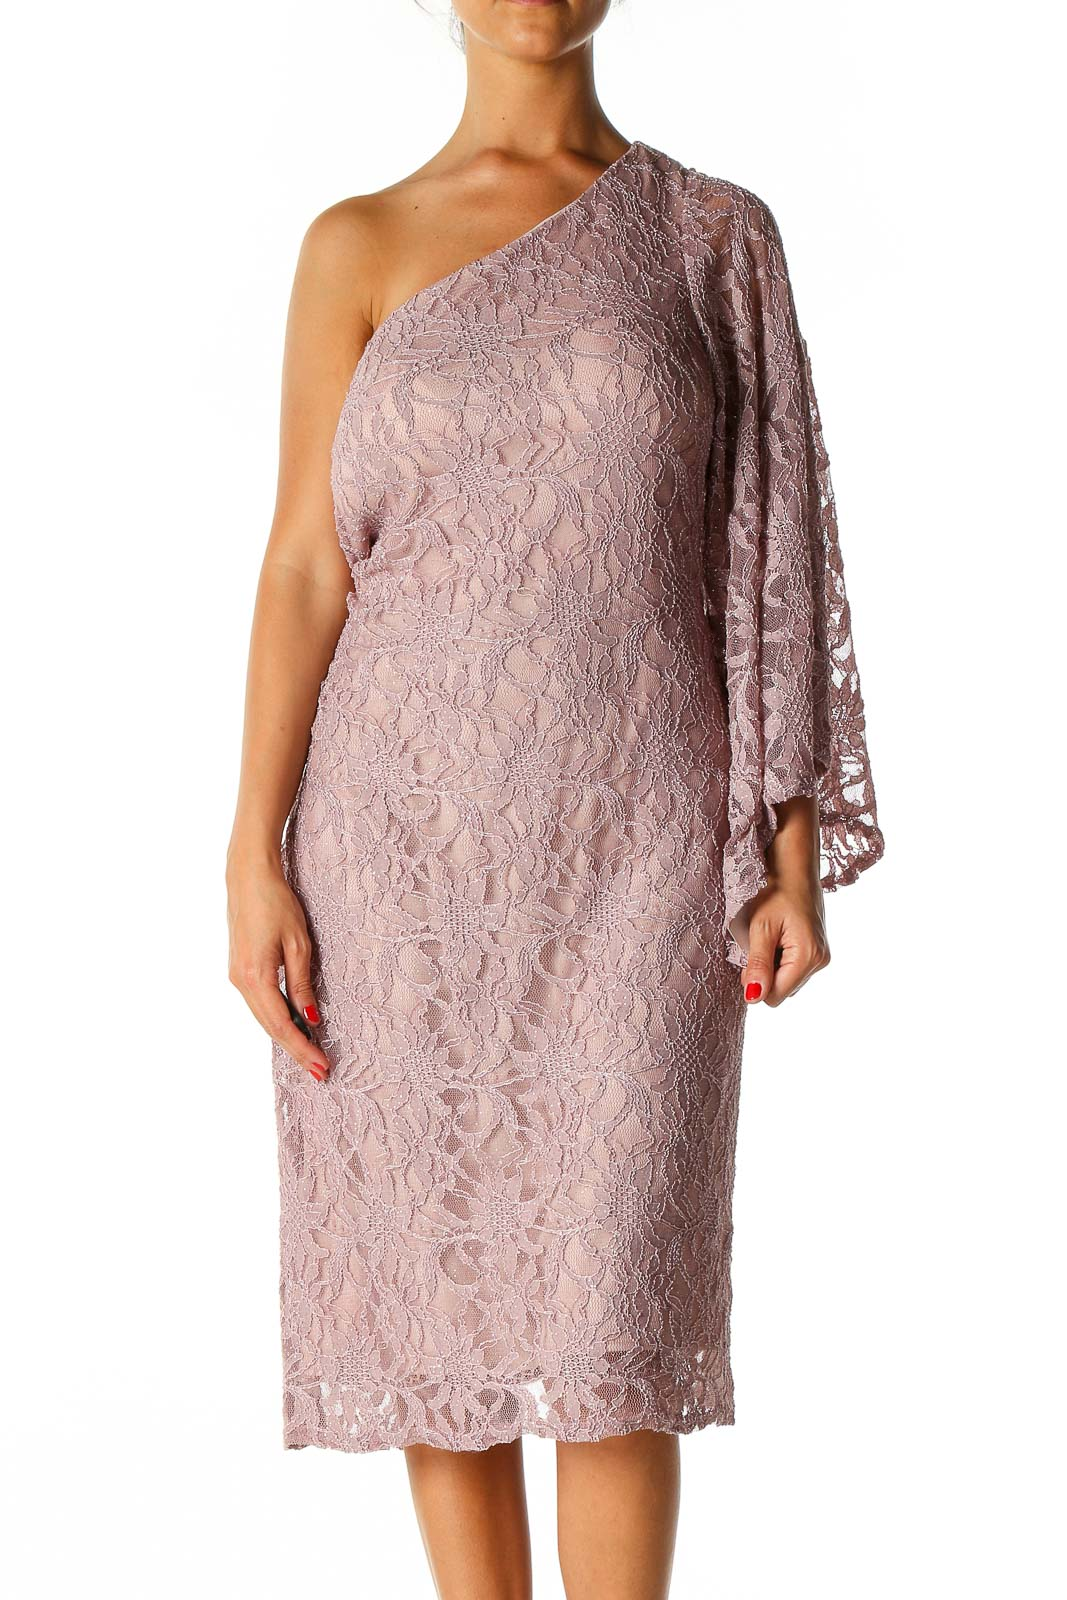 Pink Lace Semiformal A-Line Dress Front